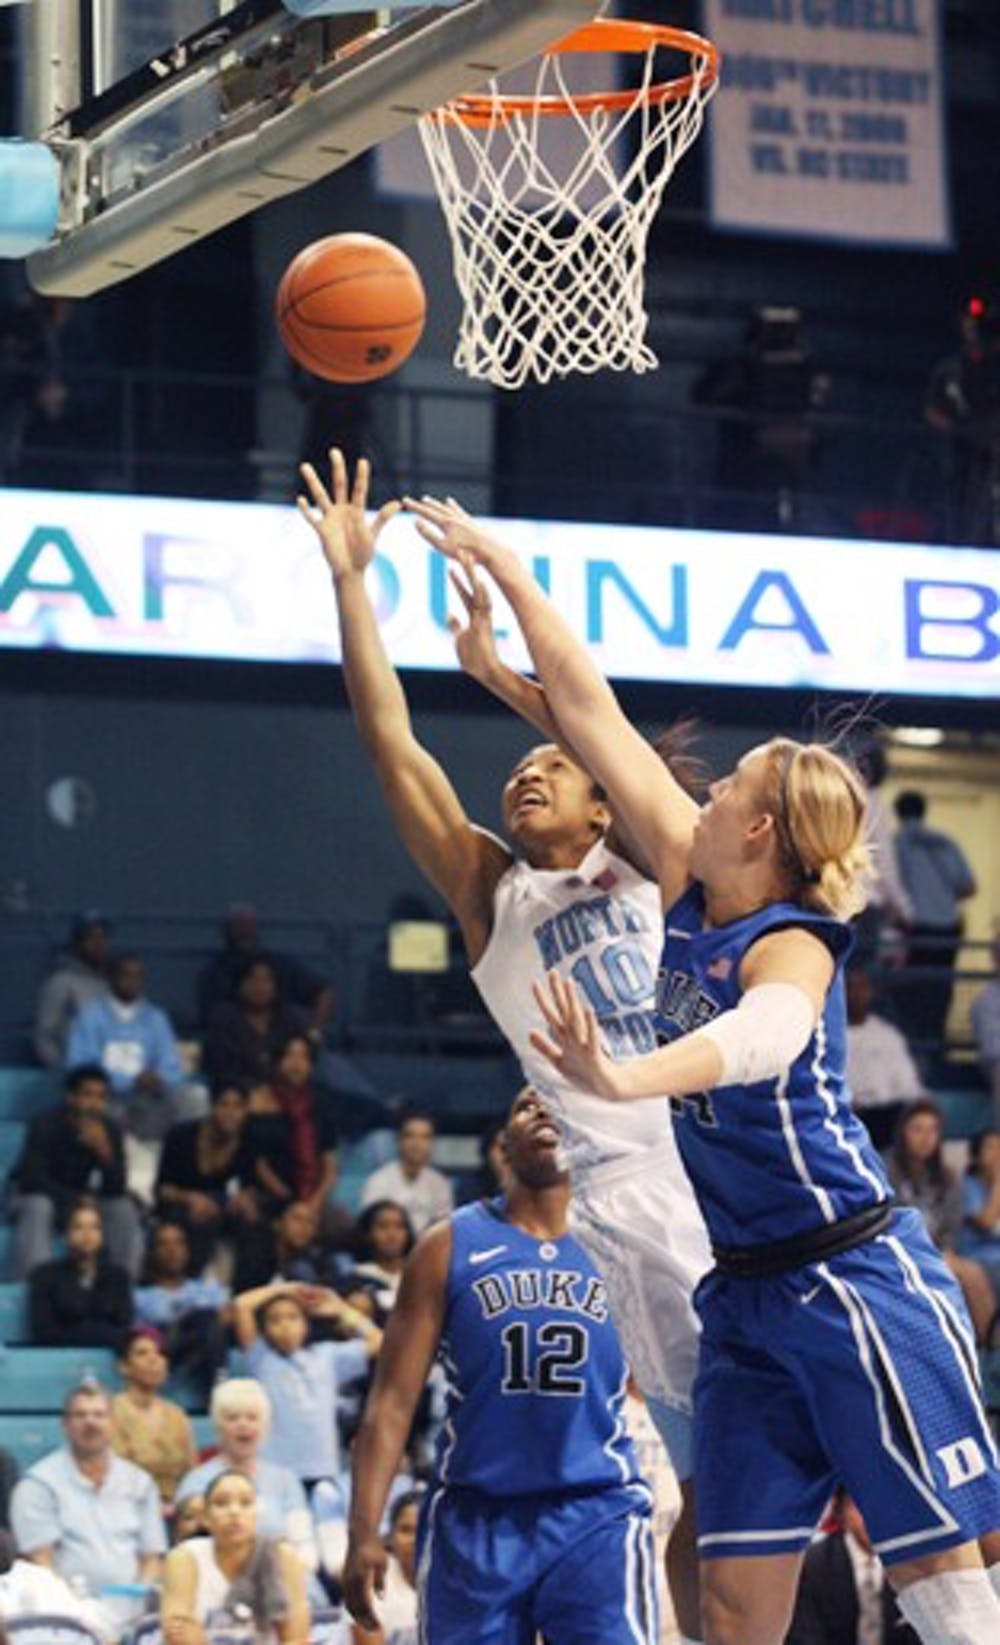 Women's basketball ACC regular season championship showcases centers Shegog, Williams